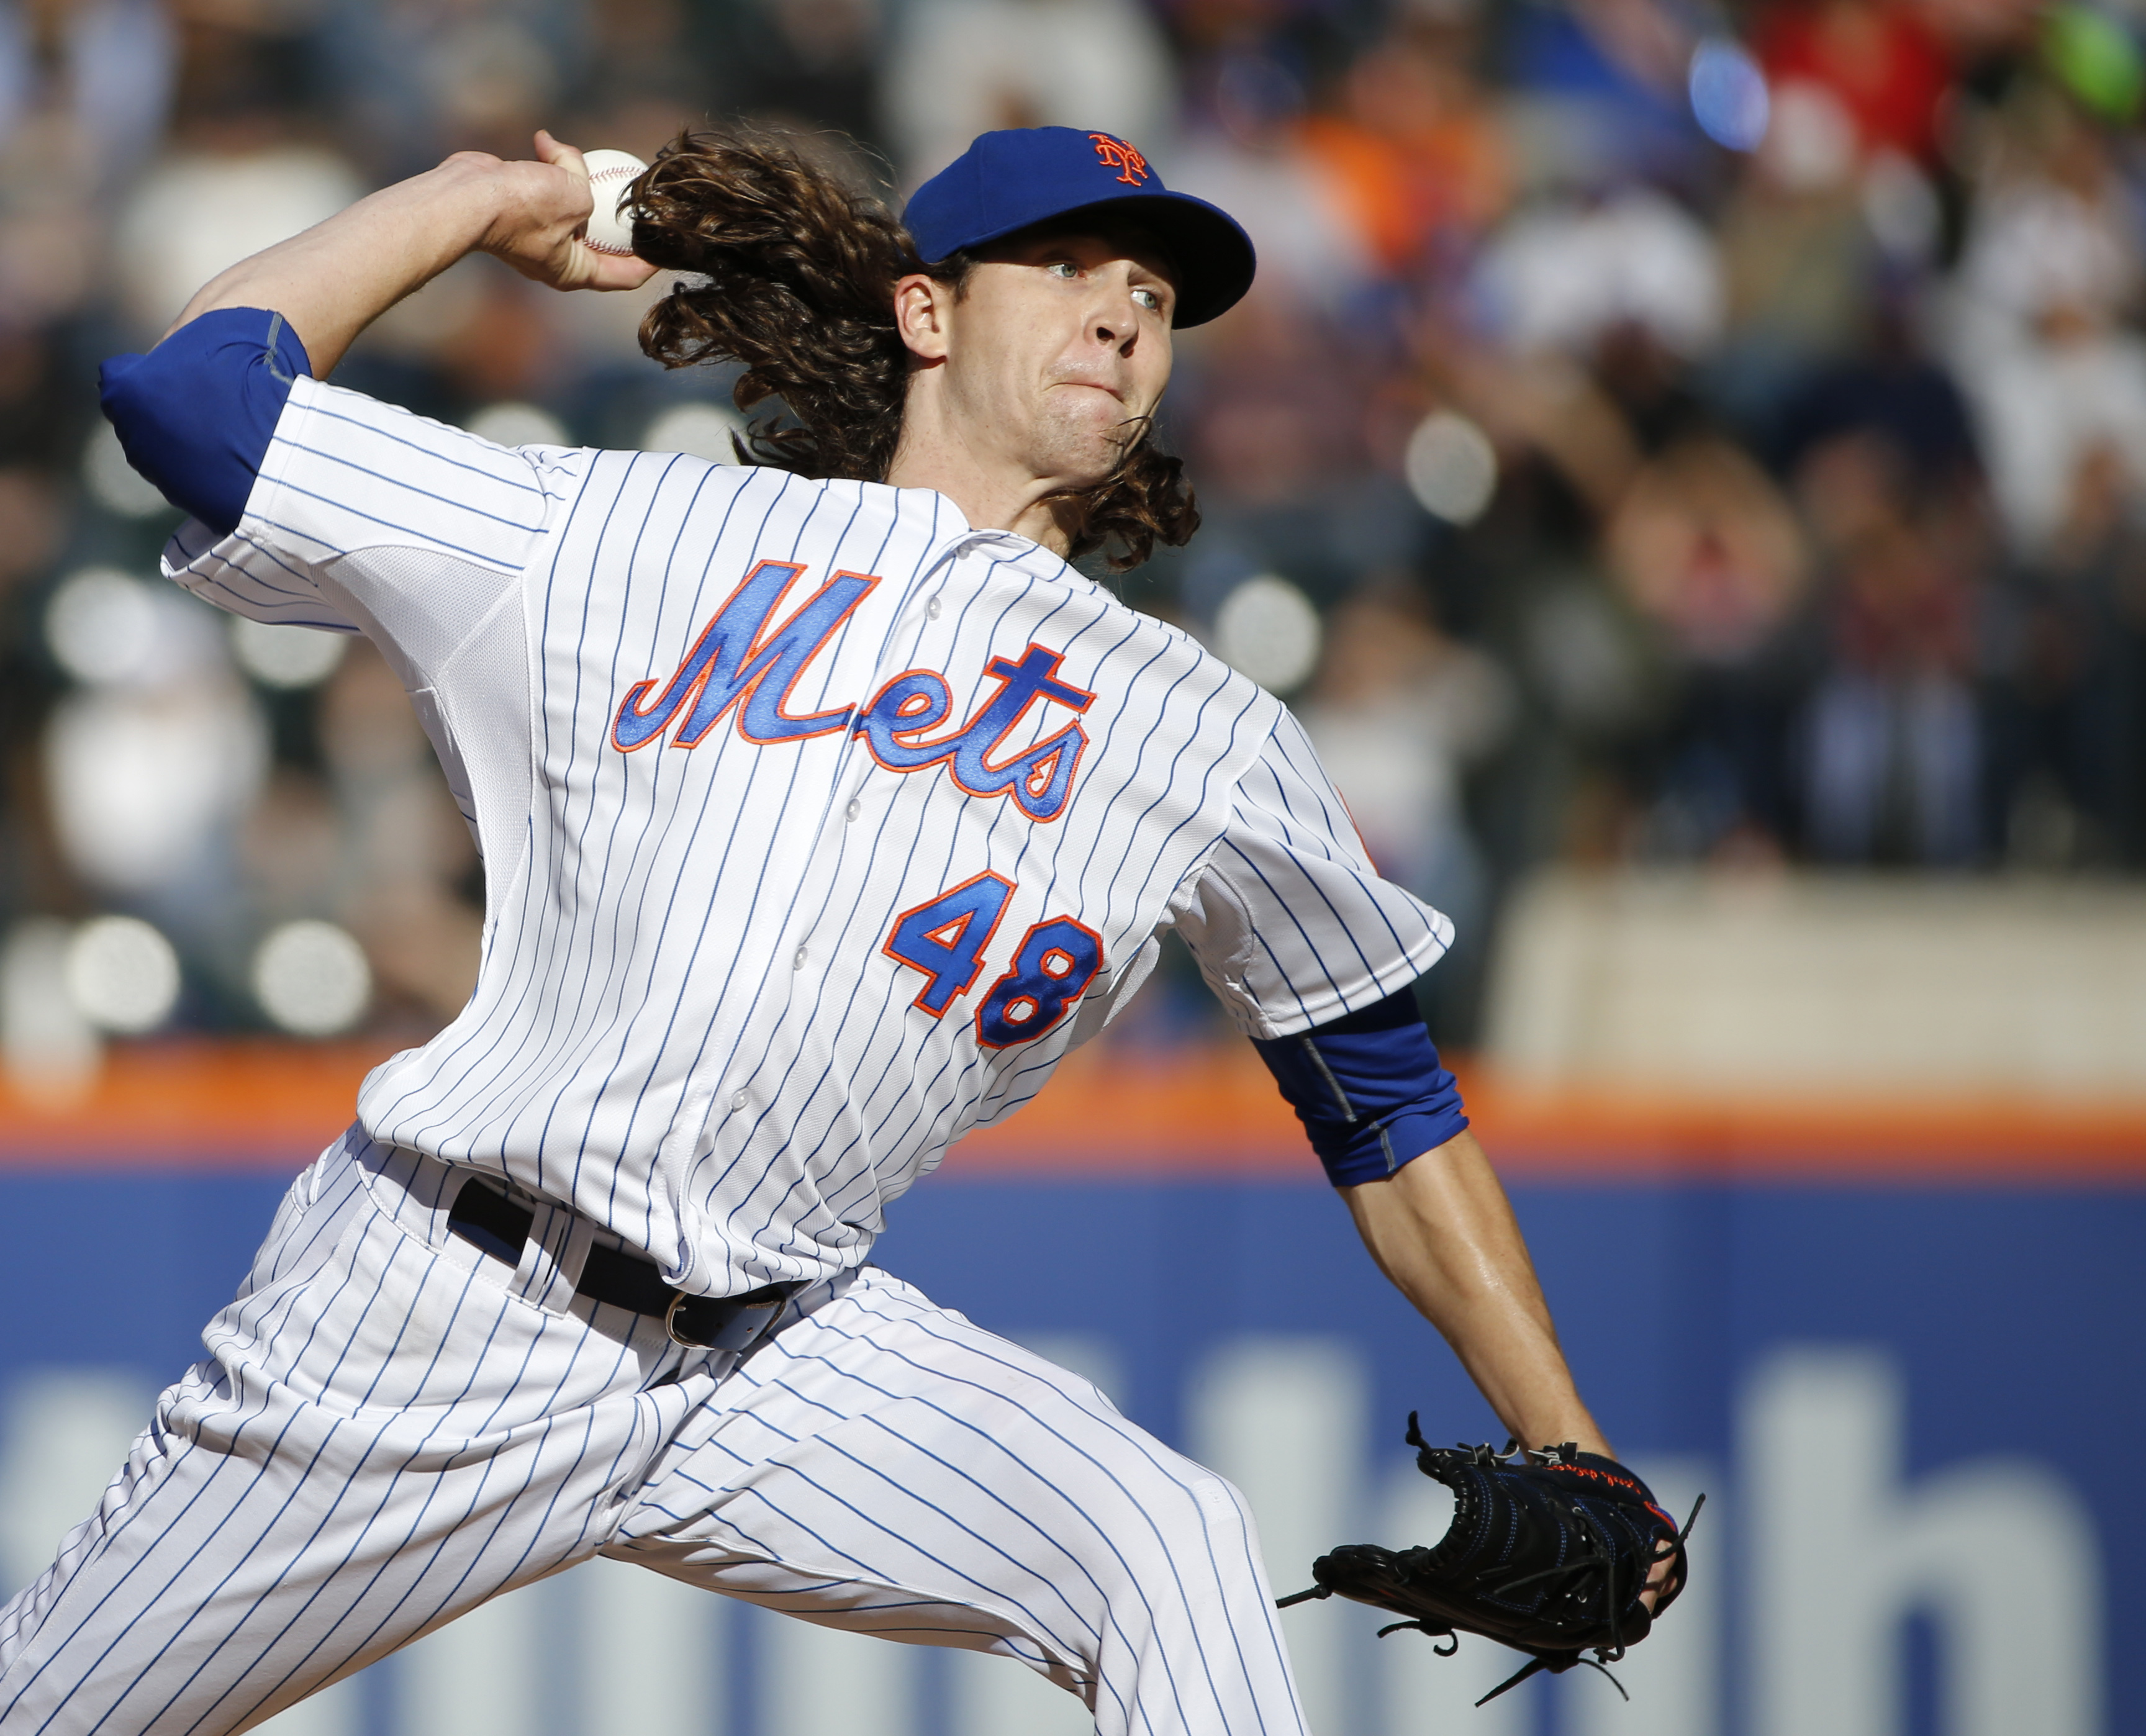 New York Mets starting pitcher Jacob deGrom delivers in the second inning of a baseball game against the Washington Nationals in New York, Sunday, Oct. 4, 2015. (AP Photo/Kathy Willens)